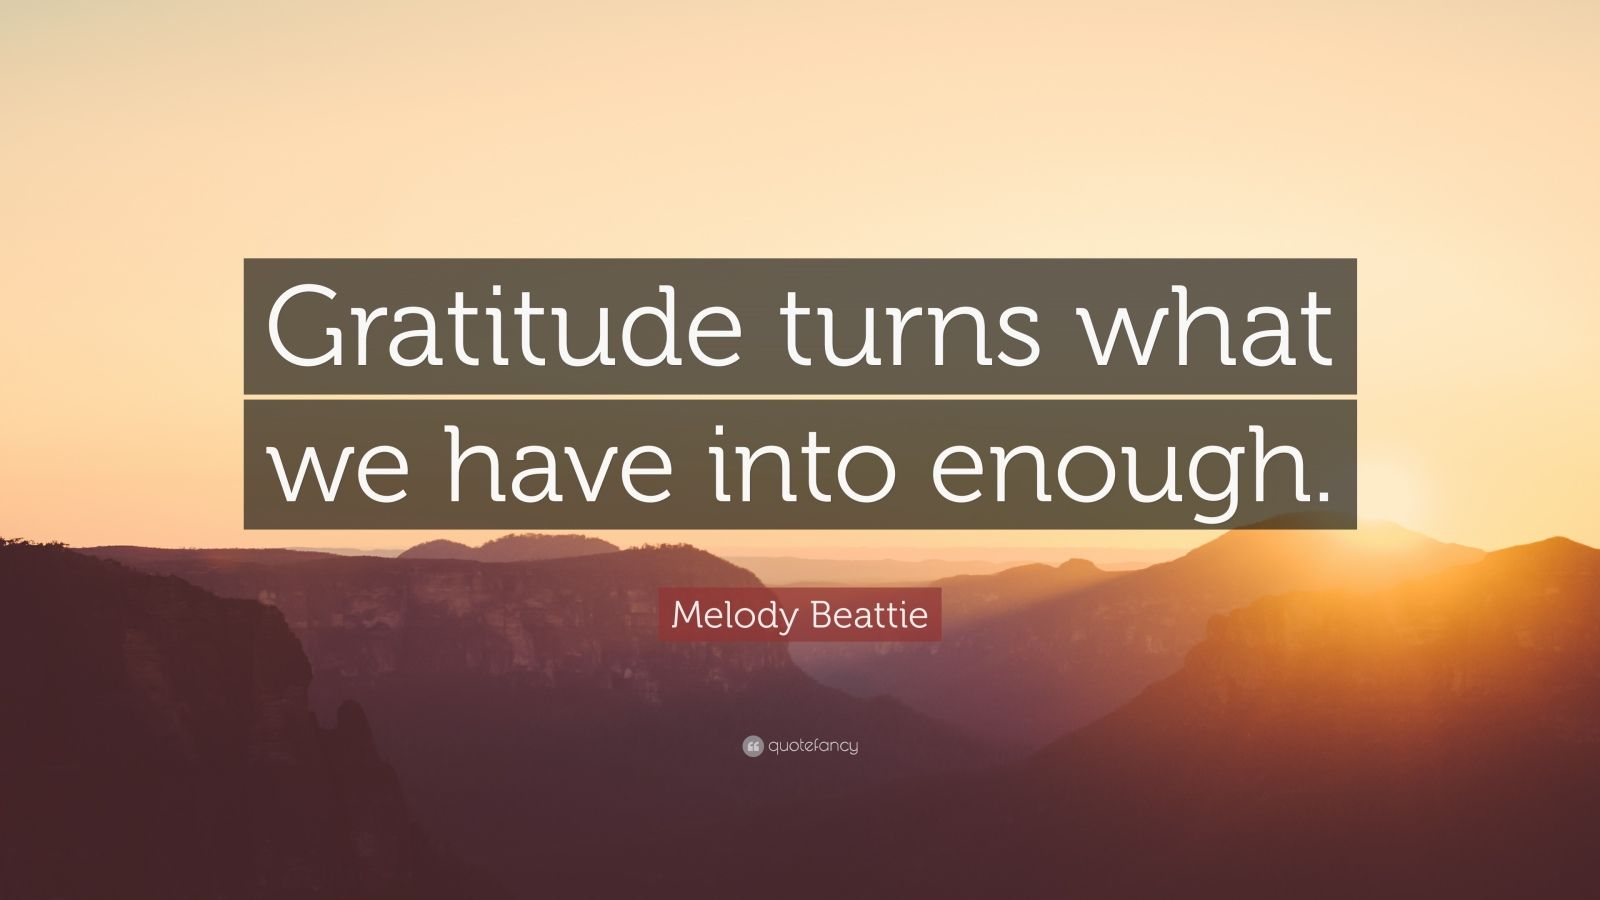 413954-Melody-Beattie-Quote-Gratitude-turns-what-we-have-into-enough.jpg